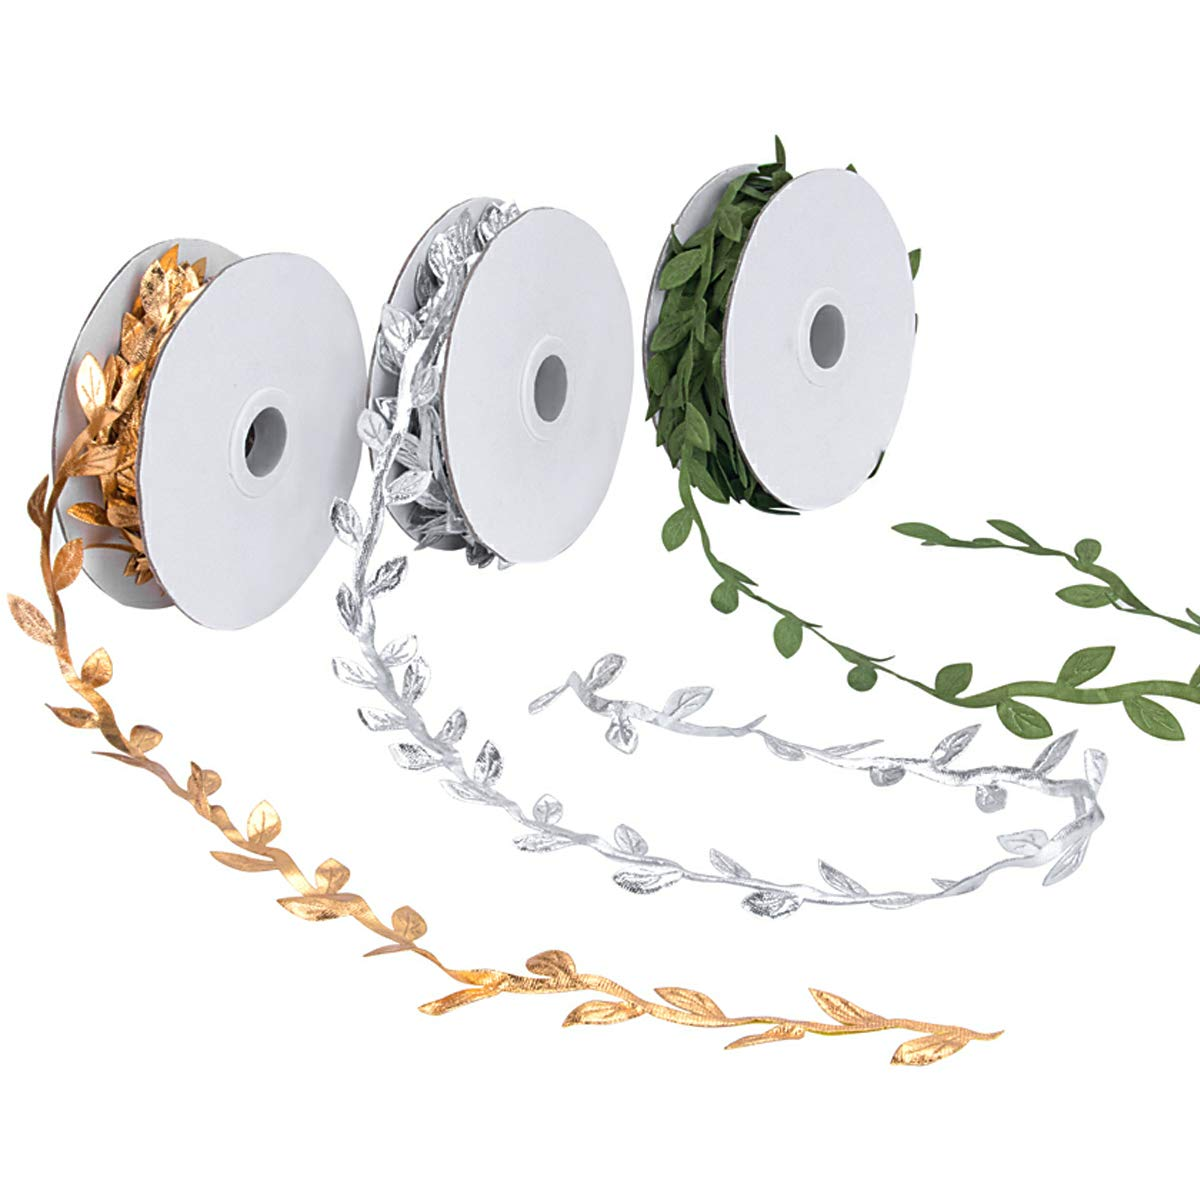 Kelife Leaf Ribbons,Gold Leaf Ribbons,Olive Green Leaf Ribbons,Silver Leaf Ribbons Trim Spool, Green Leaf Ribbon Trim Spool, Wreath Making Gift Wrapping Wedding Decoration 30YardsX 3 Pack